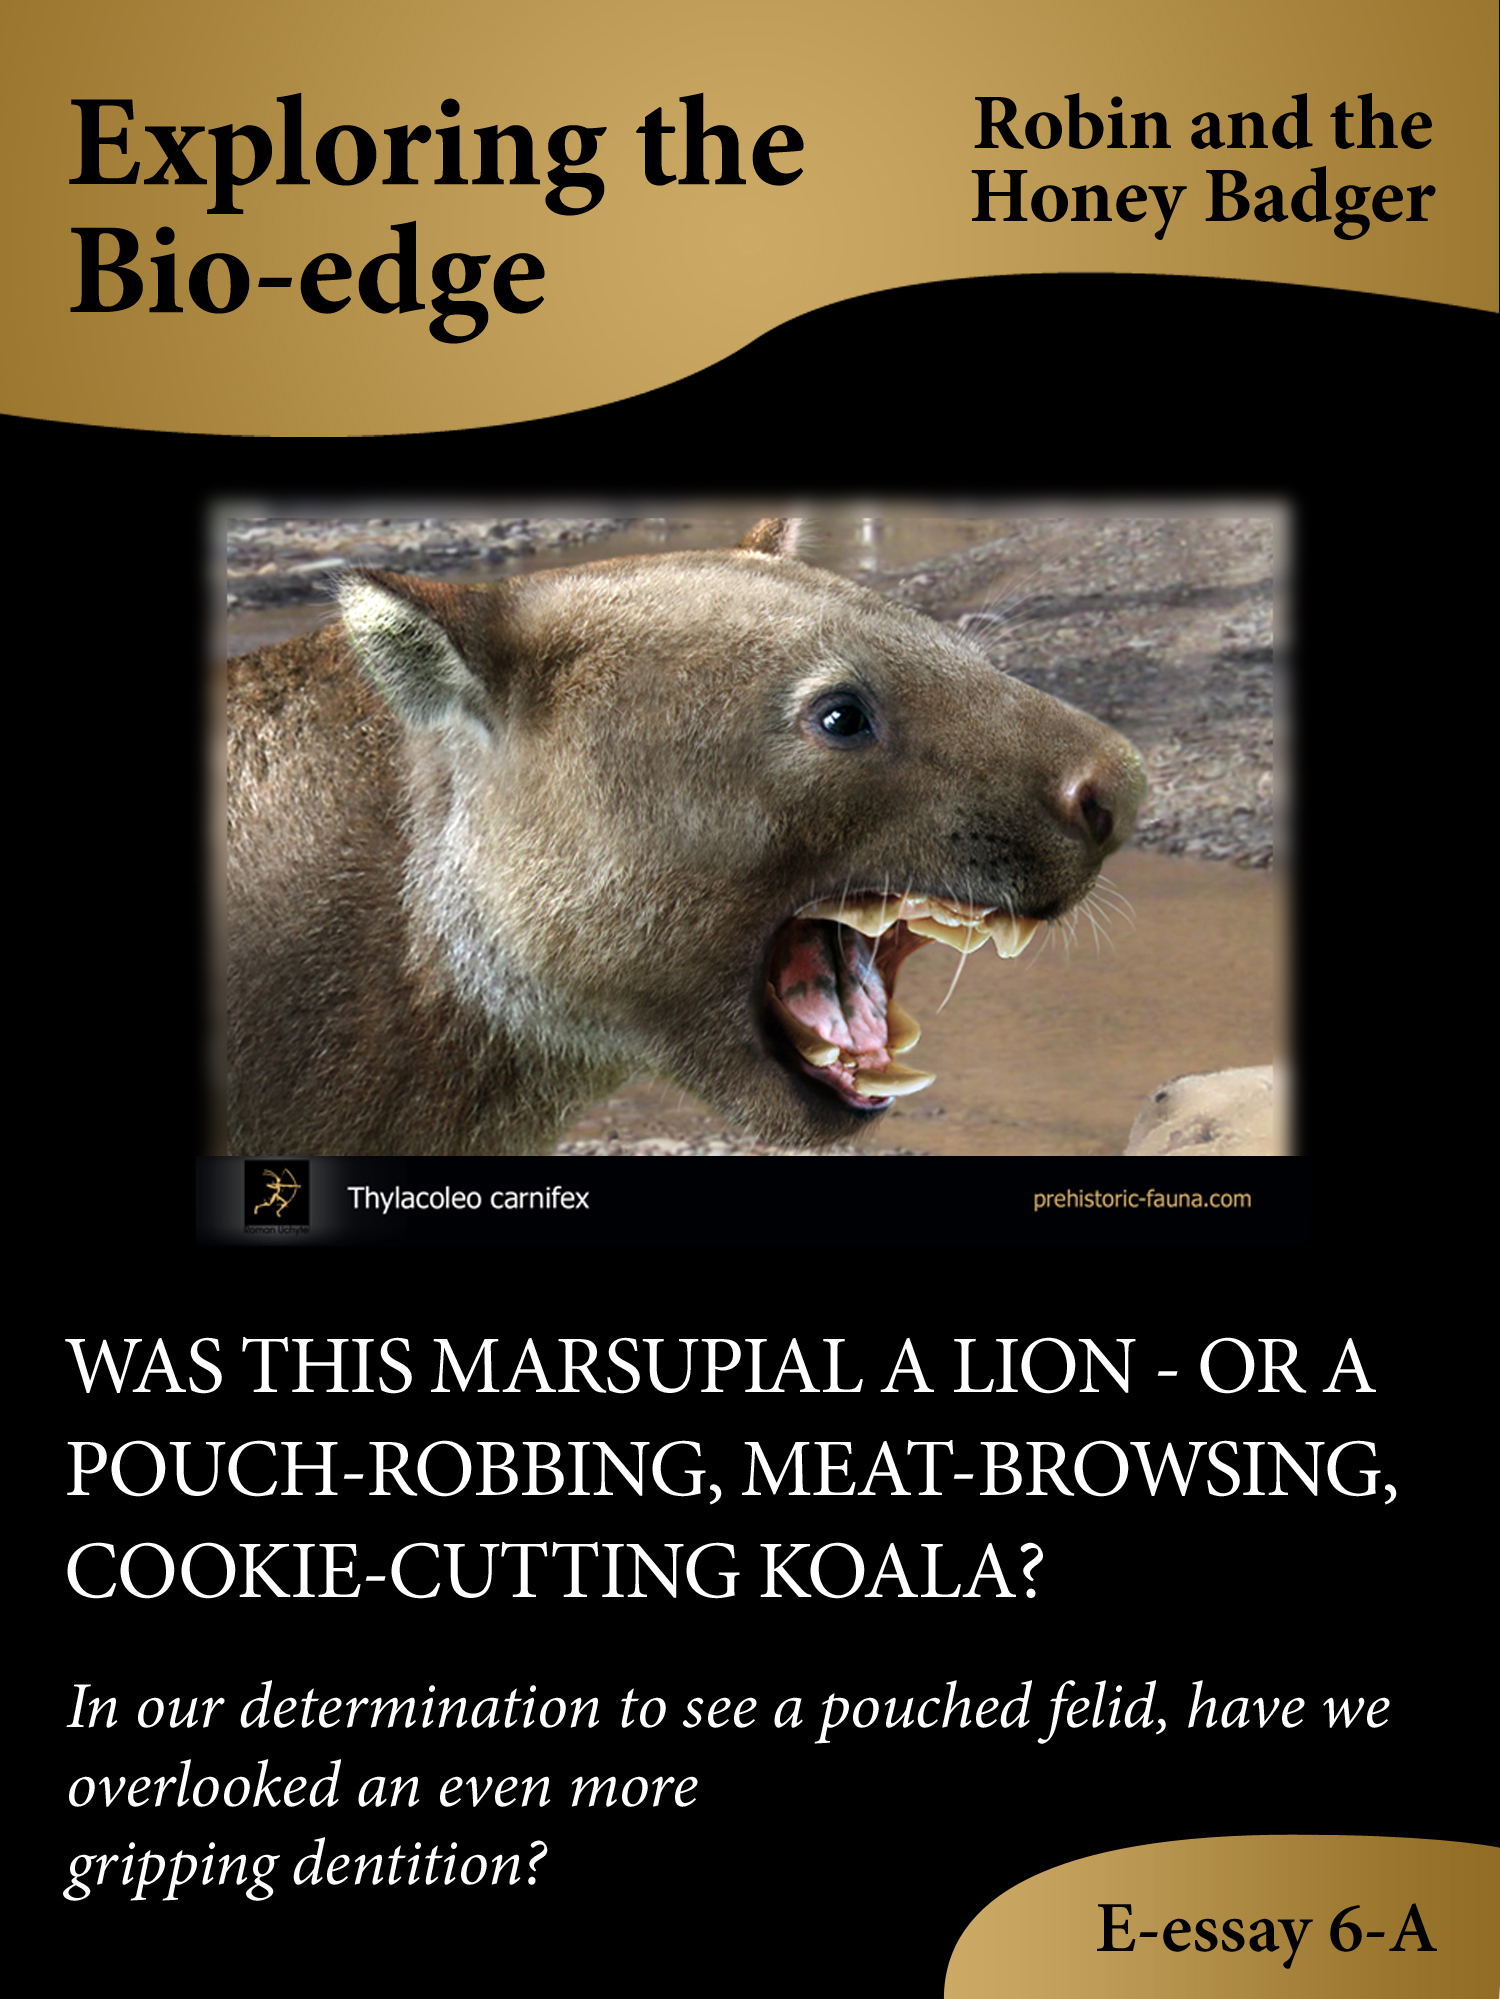 robin and the honey badger was this marsupial a lion or a pouch was this marsupial a lion or a pouch robbing meat browsing cookie cutting koala author robin and the honey badger